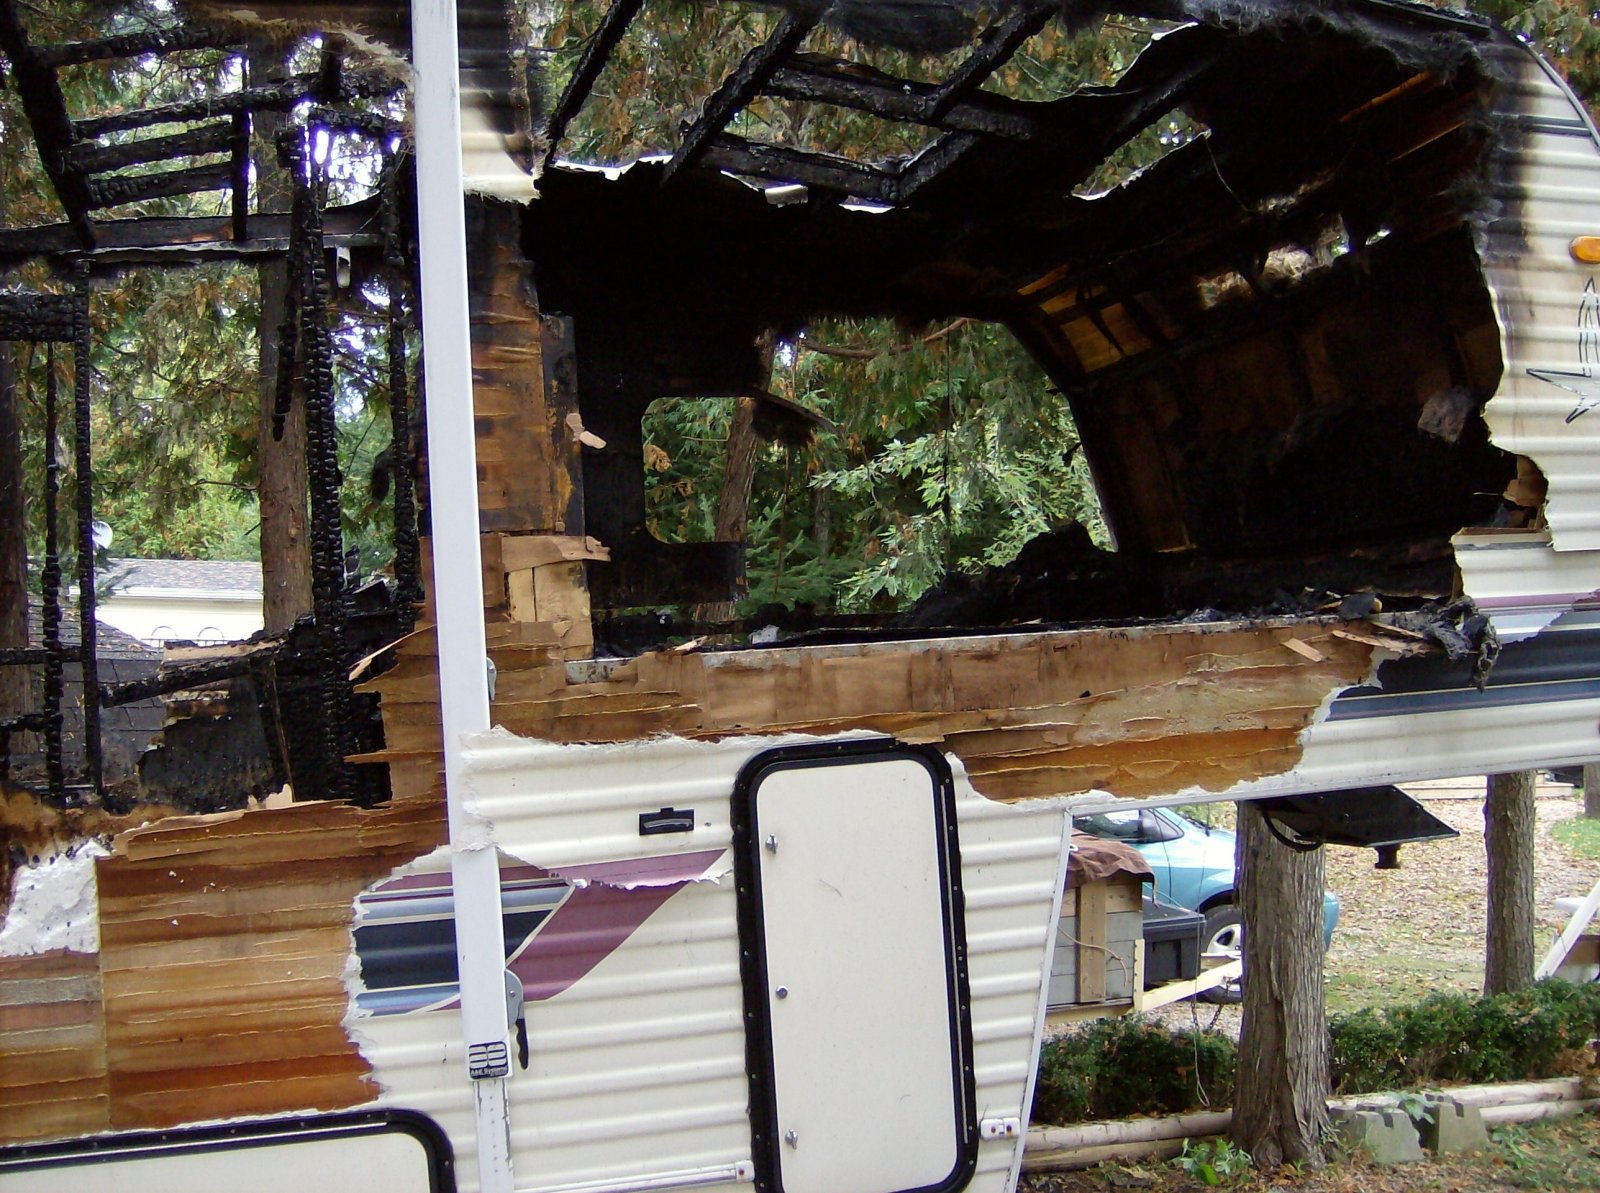 Click image for larger version  Name:Fire Damaged Trailer 003.jpg Views:101 Size:420.7 KB ID:112187